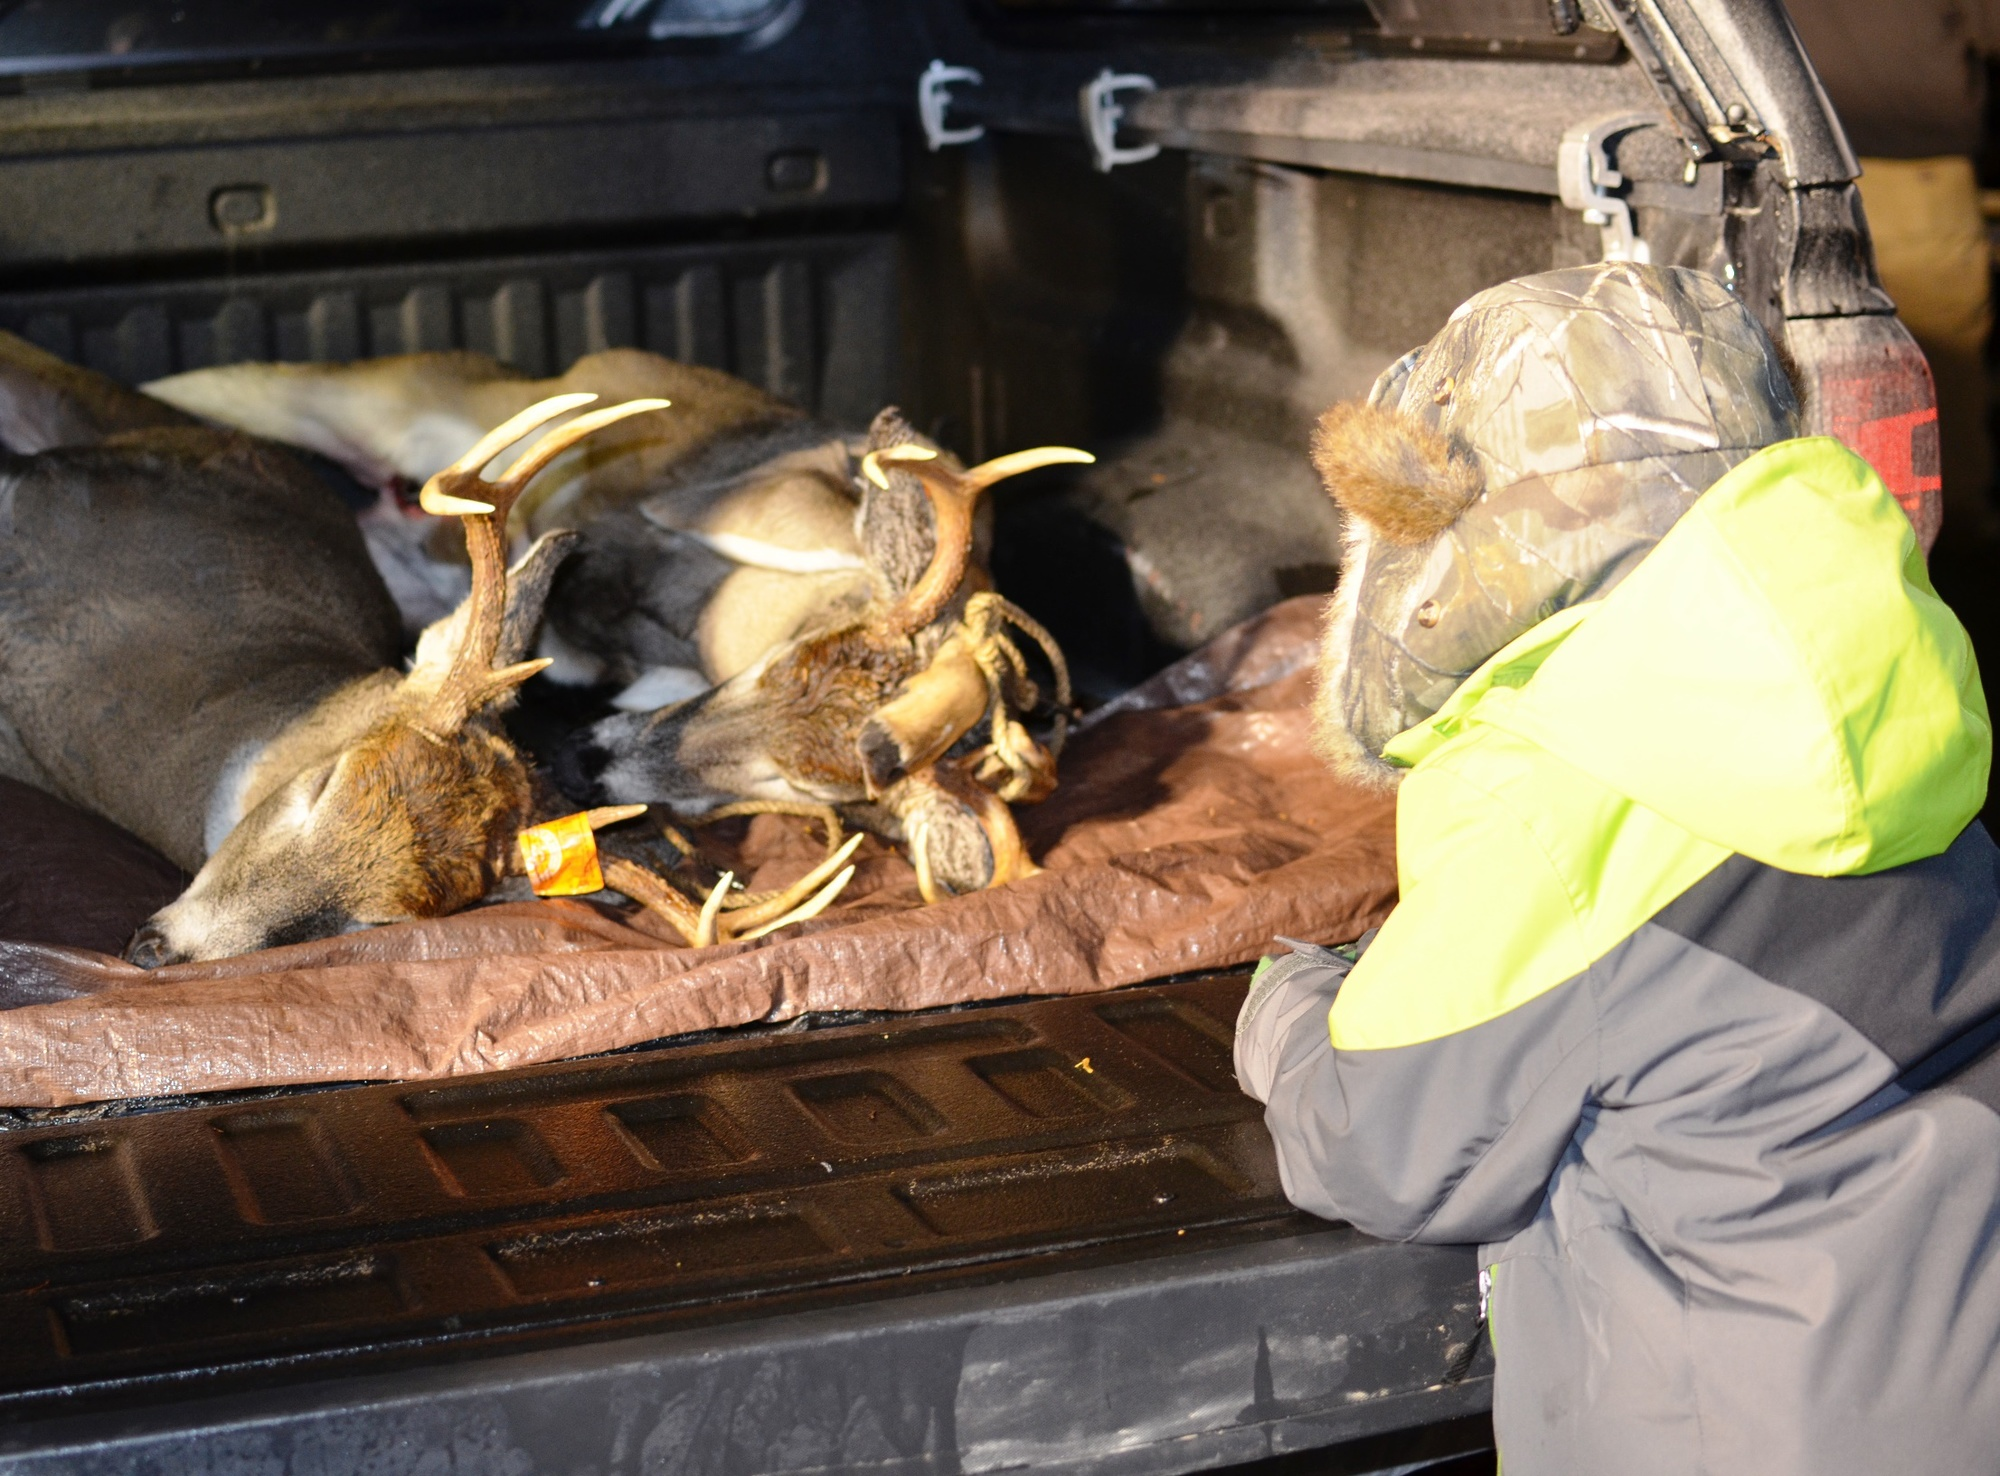 DNR - DNR check station staff hunting valuable deer data